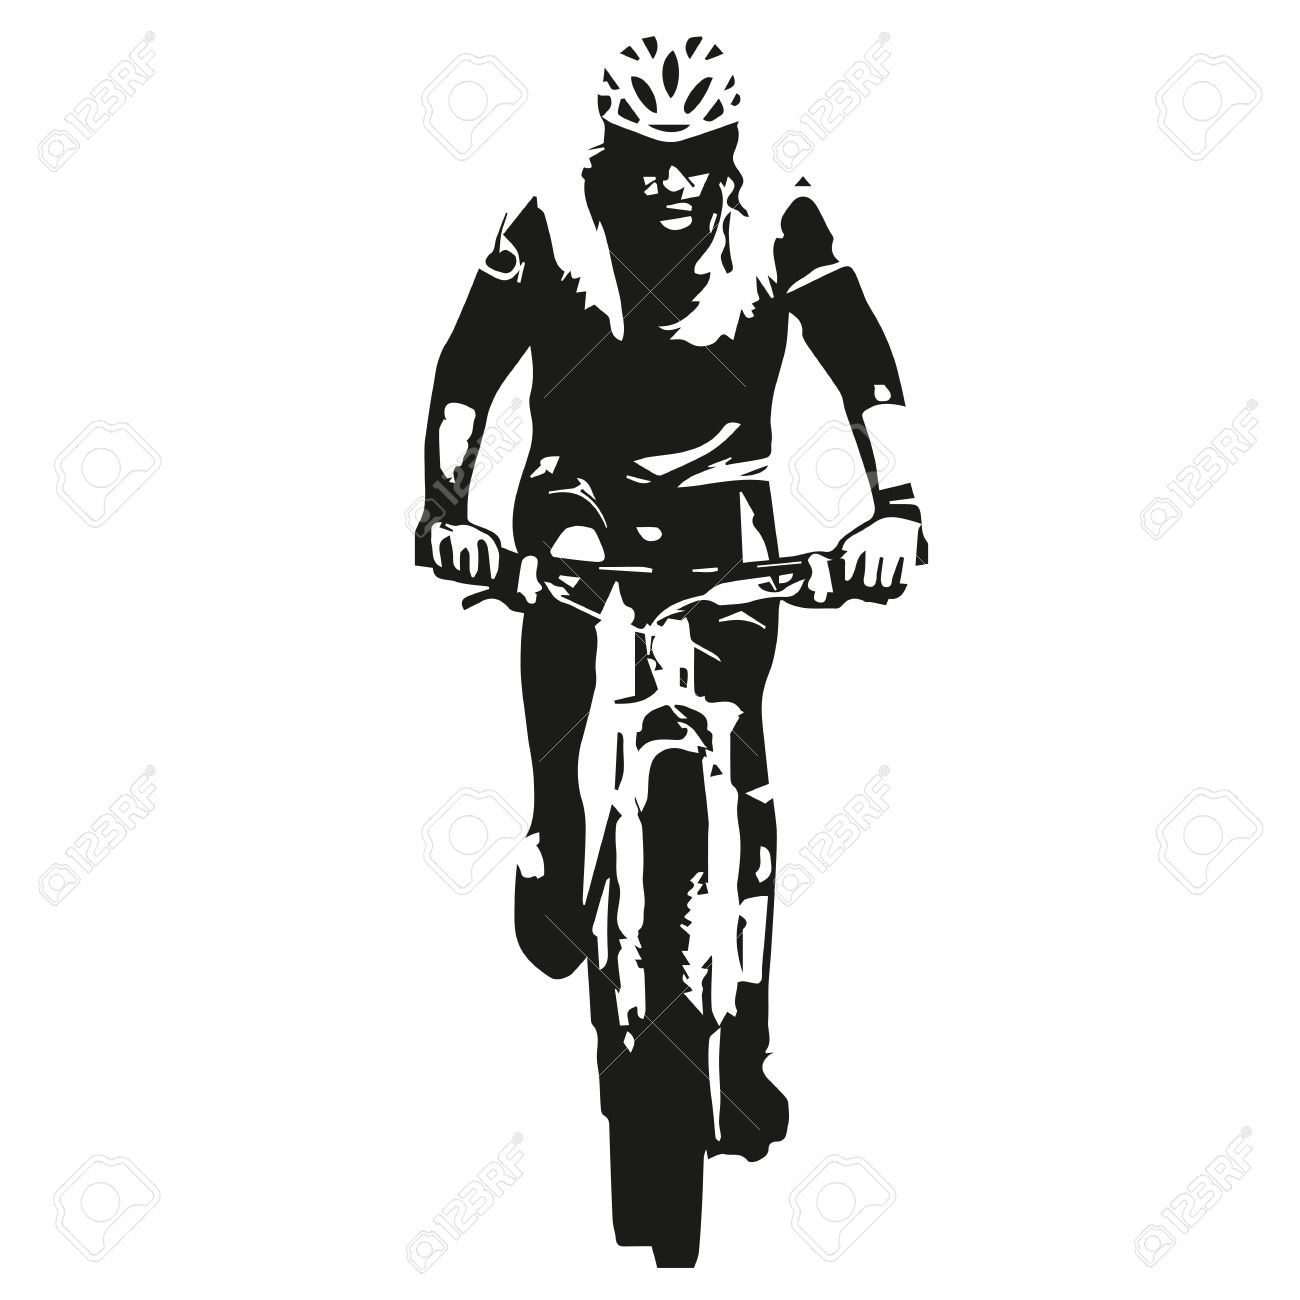 Mountain biker, abstract vector bicycle rider silhouette - 55397355